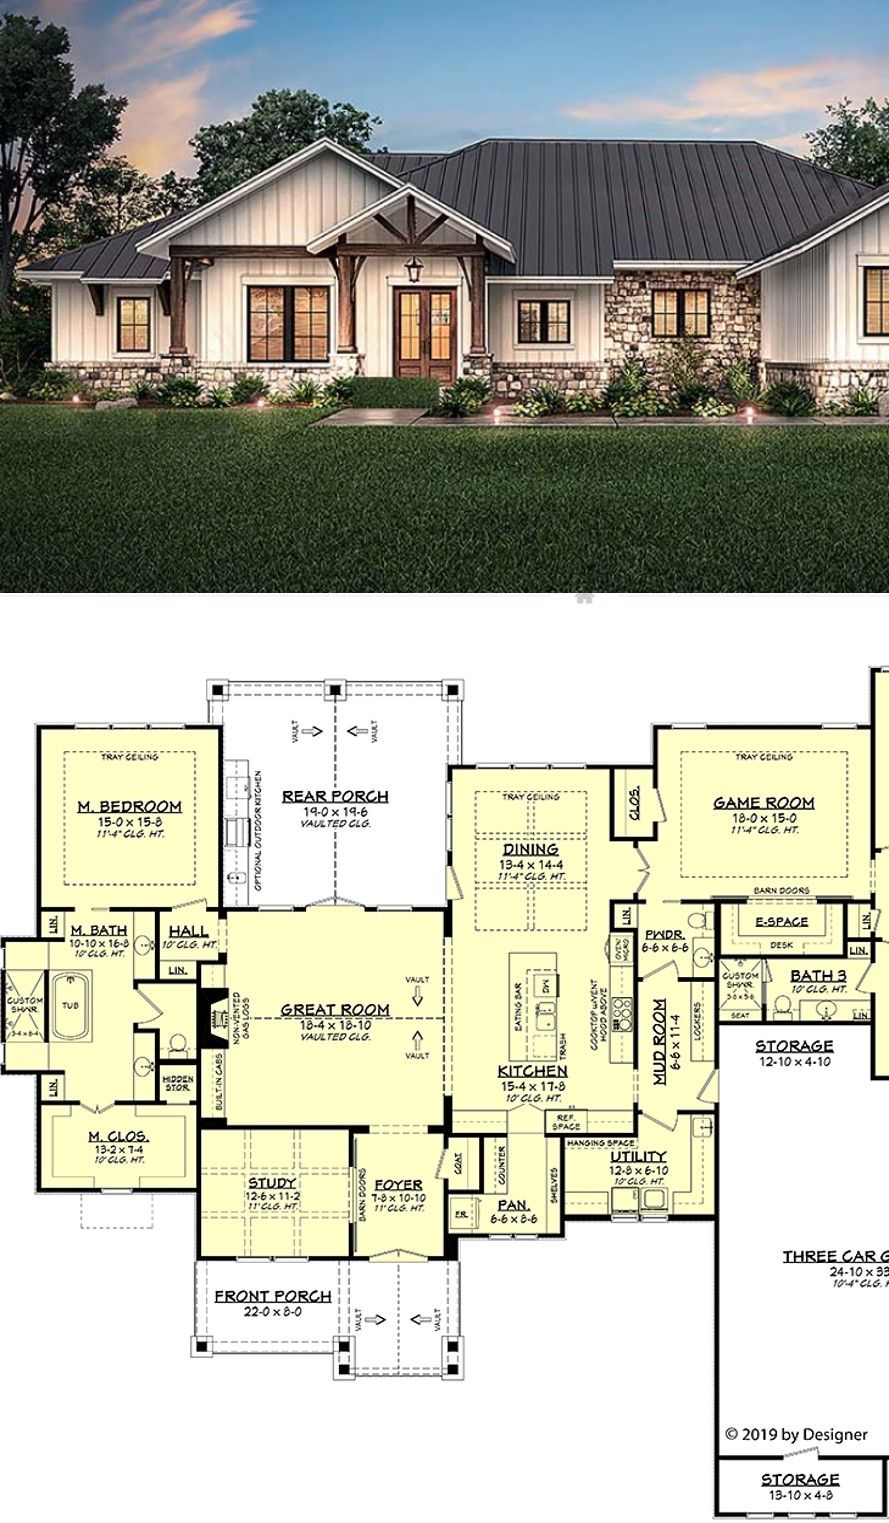 Ranch Style House Plan With 4 Bed 4 Bath 3 Car Garage Ranch Style House Plans Ranch Style Floor Plans Ranch Style Homes